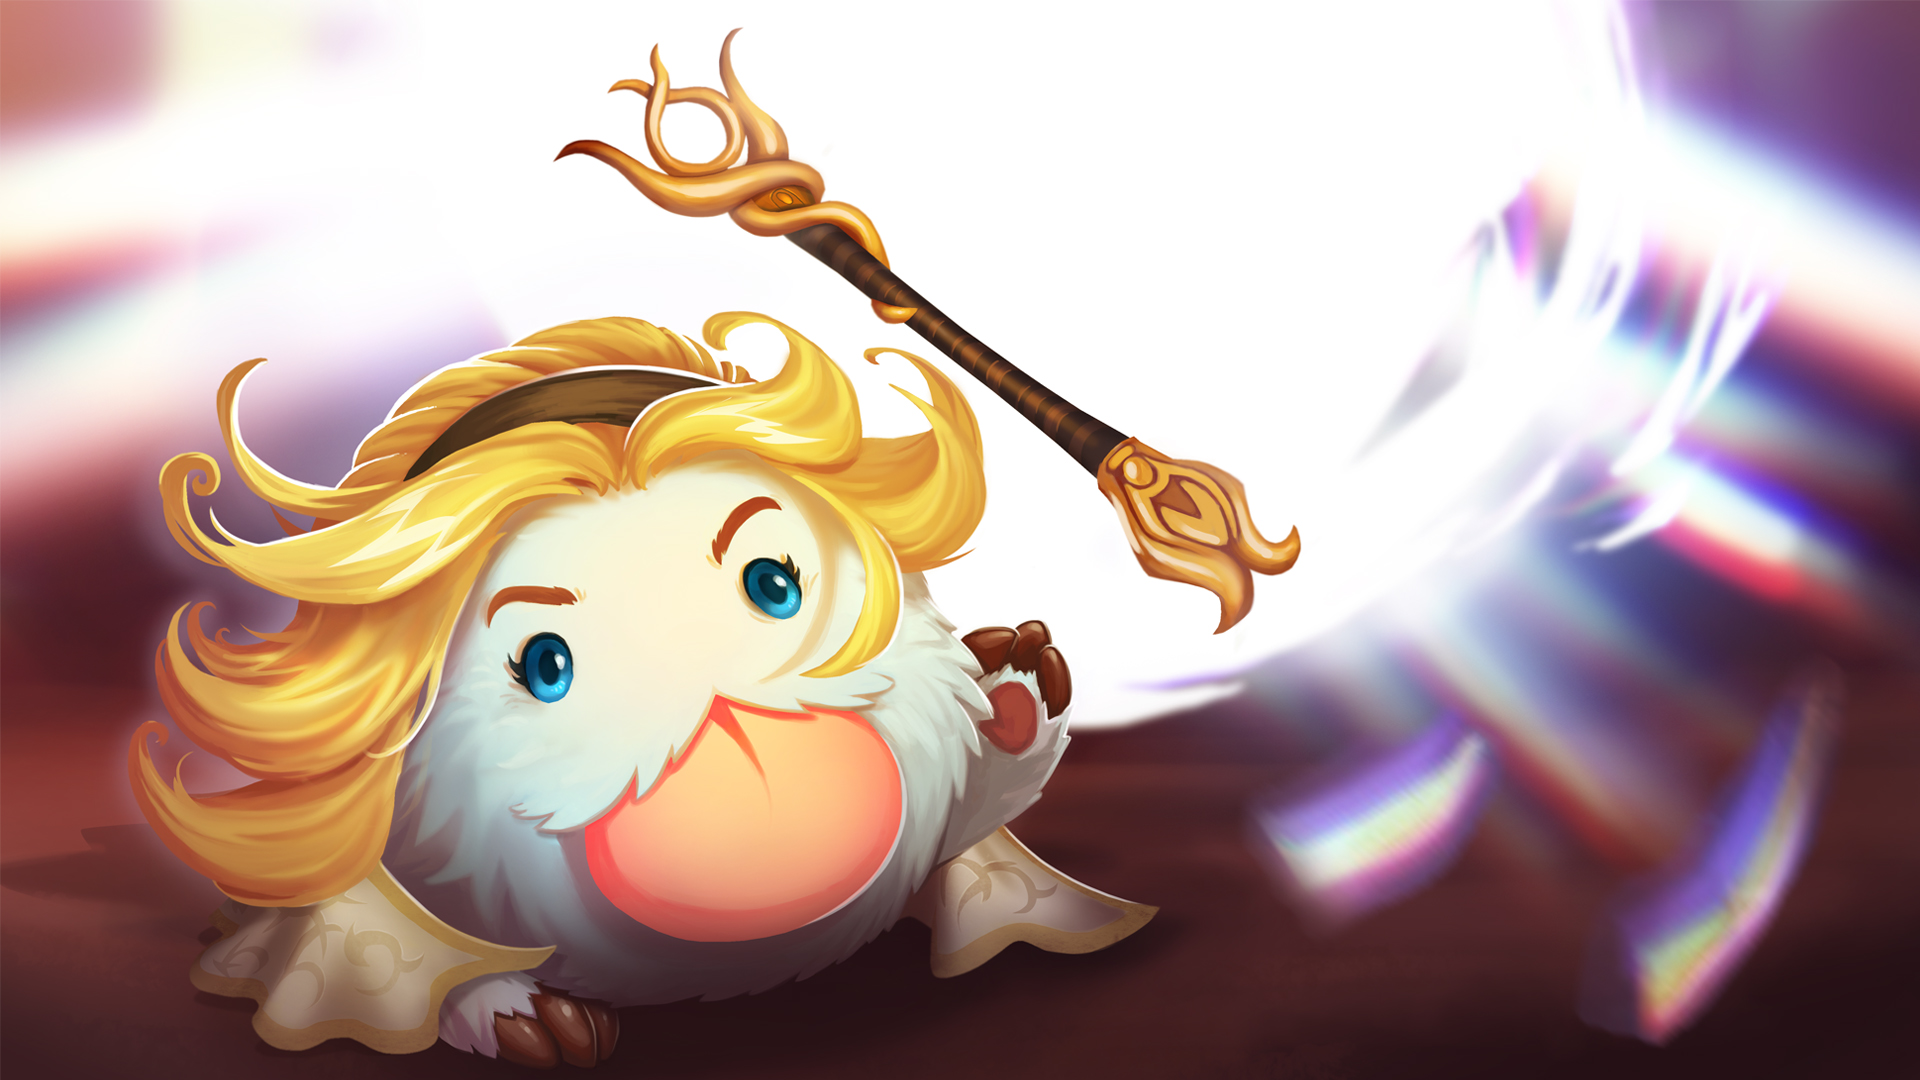 League Of Legends Images Poro Lux HD Wallpaper And Background Photos